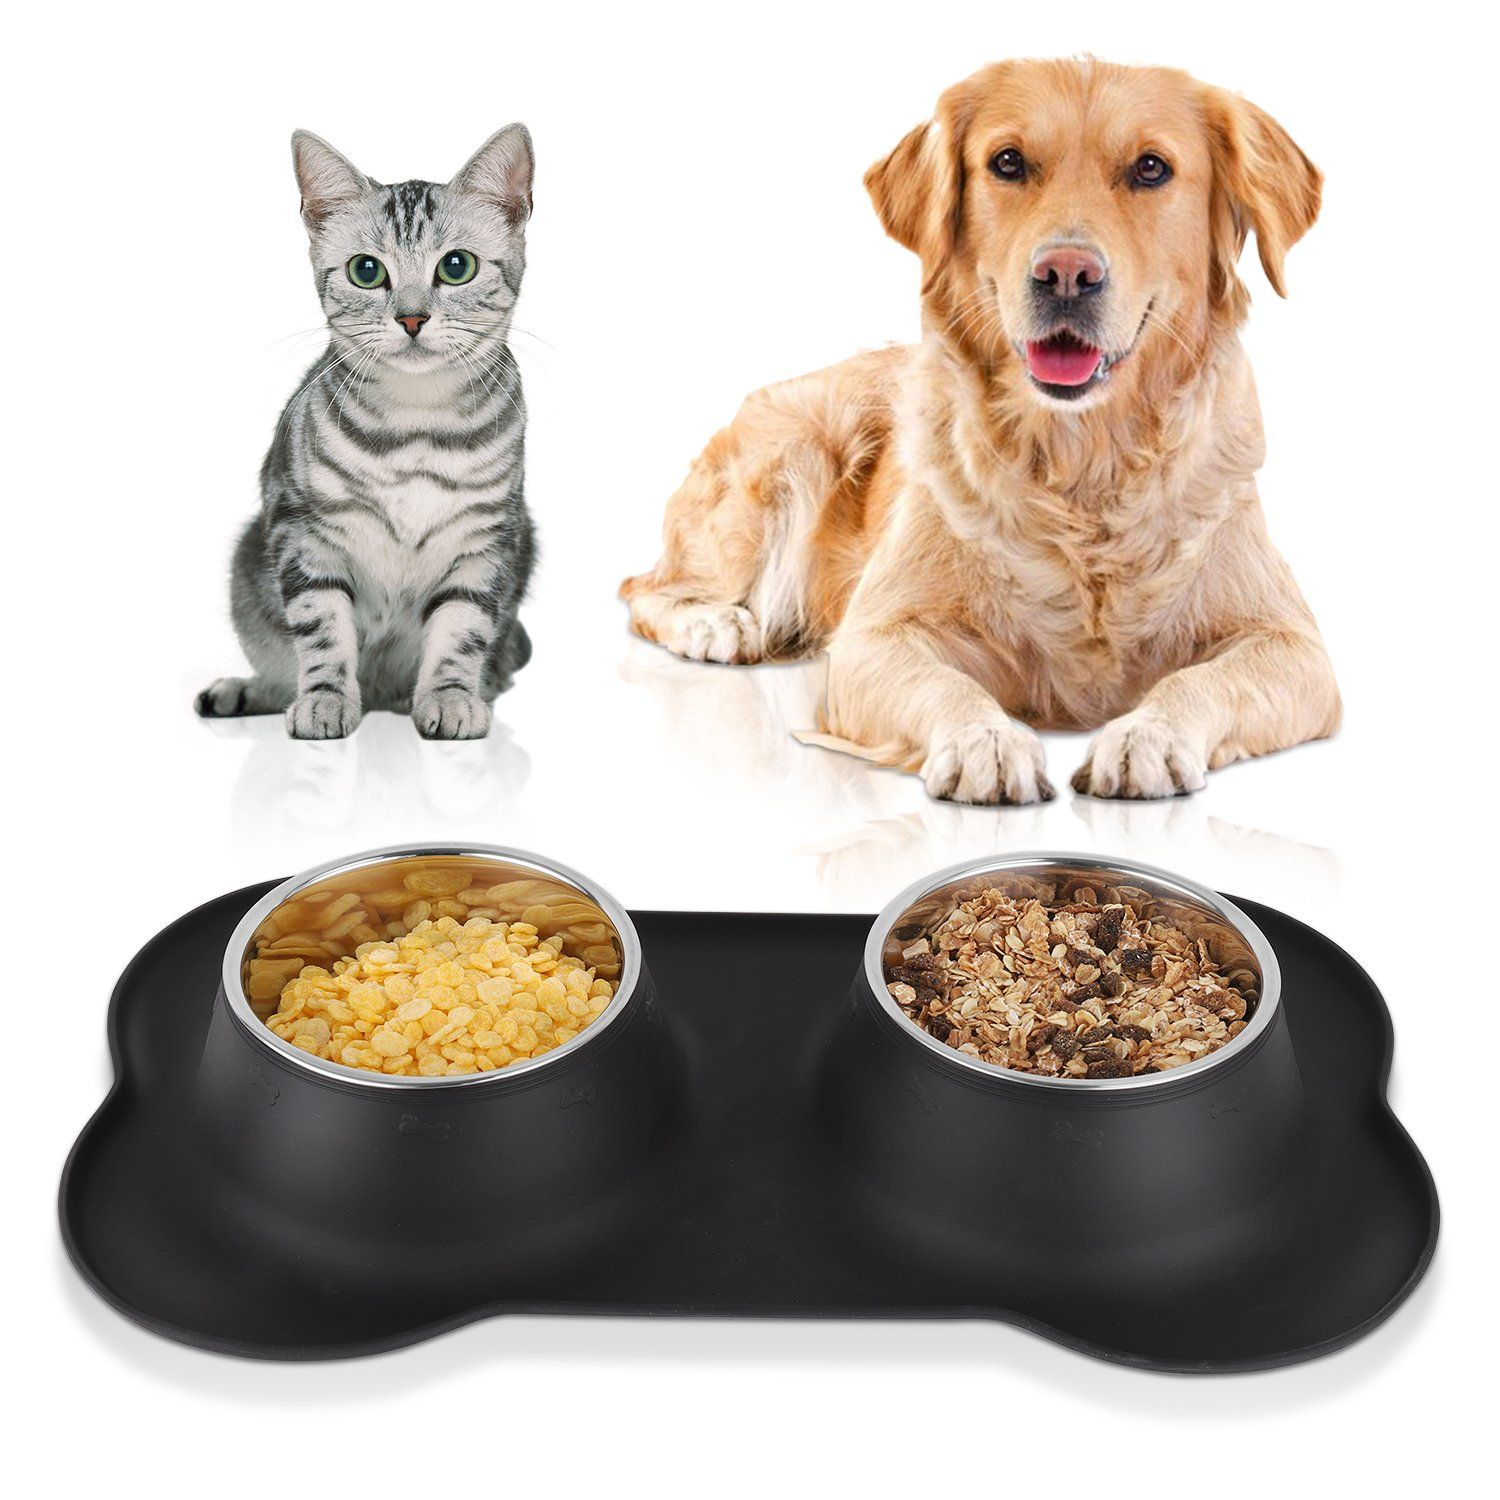 Moma Home Dog Bowls Stainless Steel Set Of 2 Dishes Feeder Food And Water Bowls With No Spill And Non Skid Bone Shape Silicone Dog Bowls Dog Feeding Pet Bowls